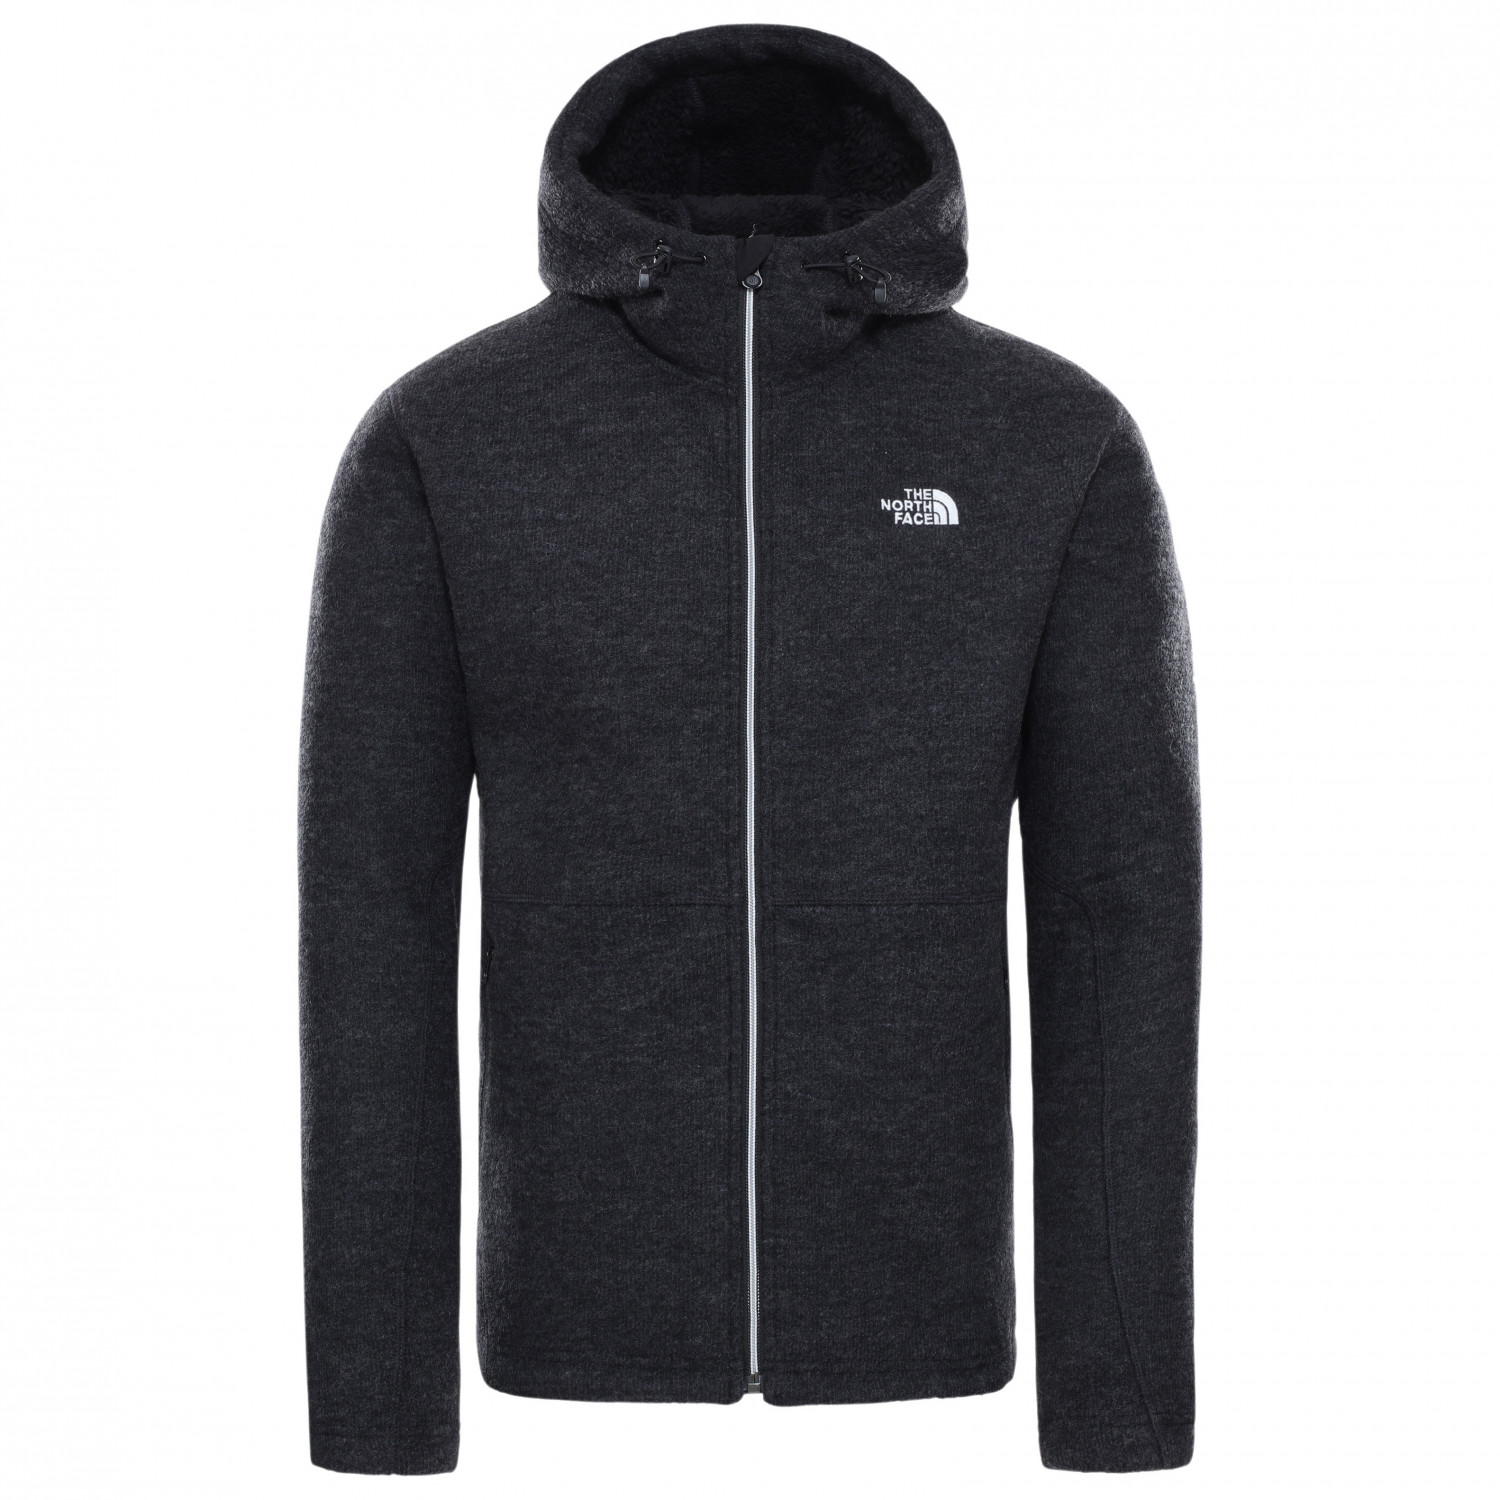 a248f9a69512 Veste Face Full Zermatt The Homme Zip Hoodie North Polaire wYqTvvBx